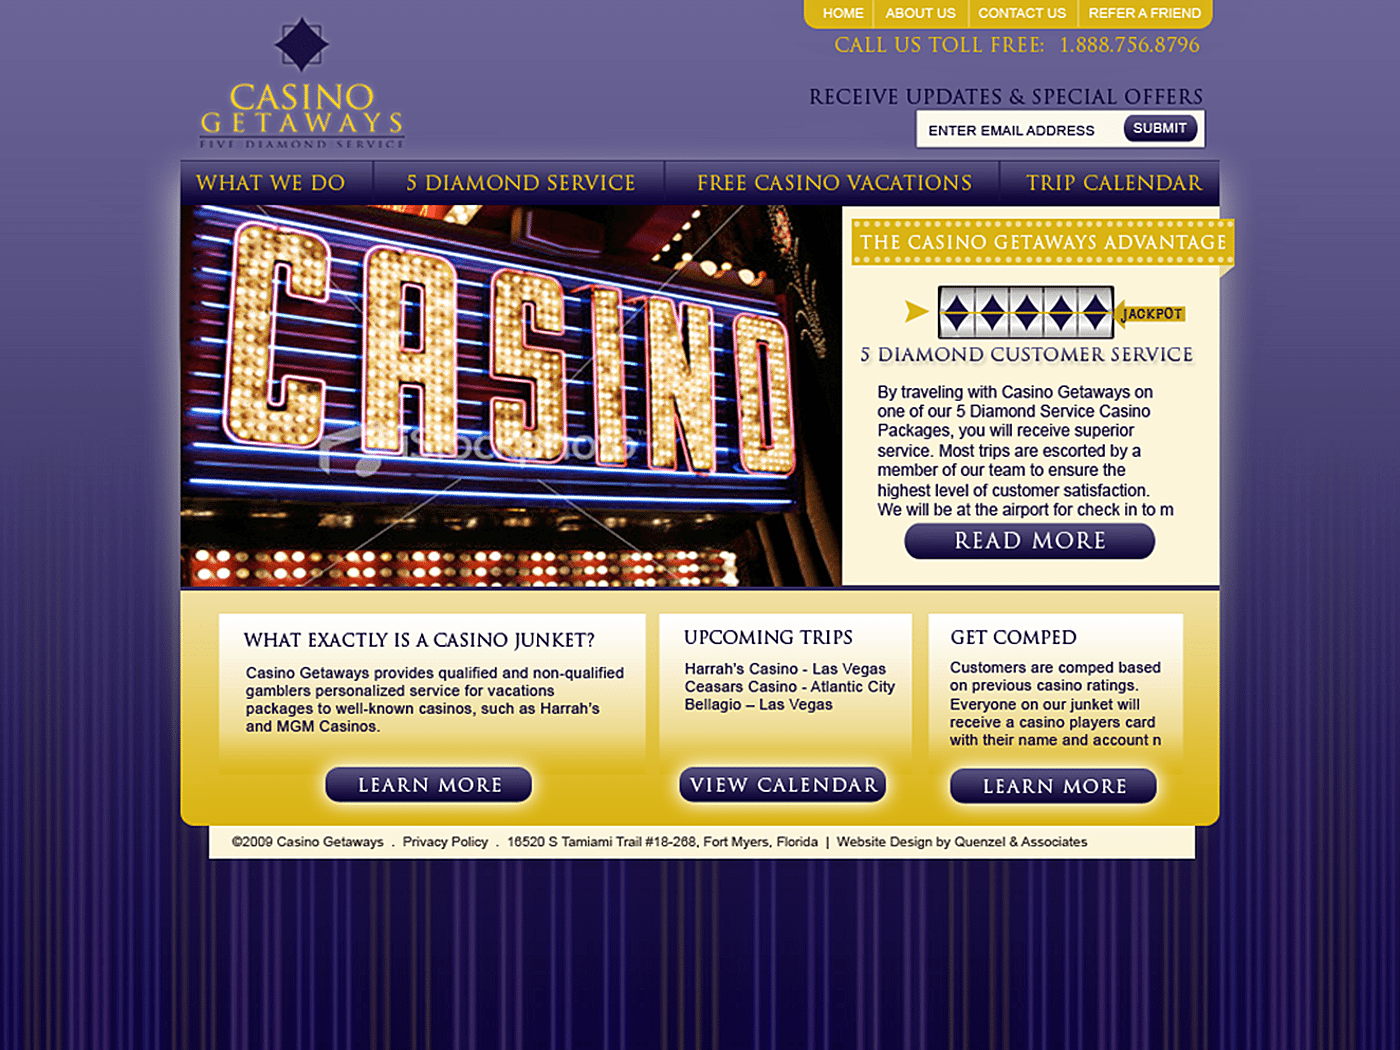 Destination Website Design Agency Creative |Casinos